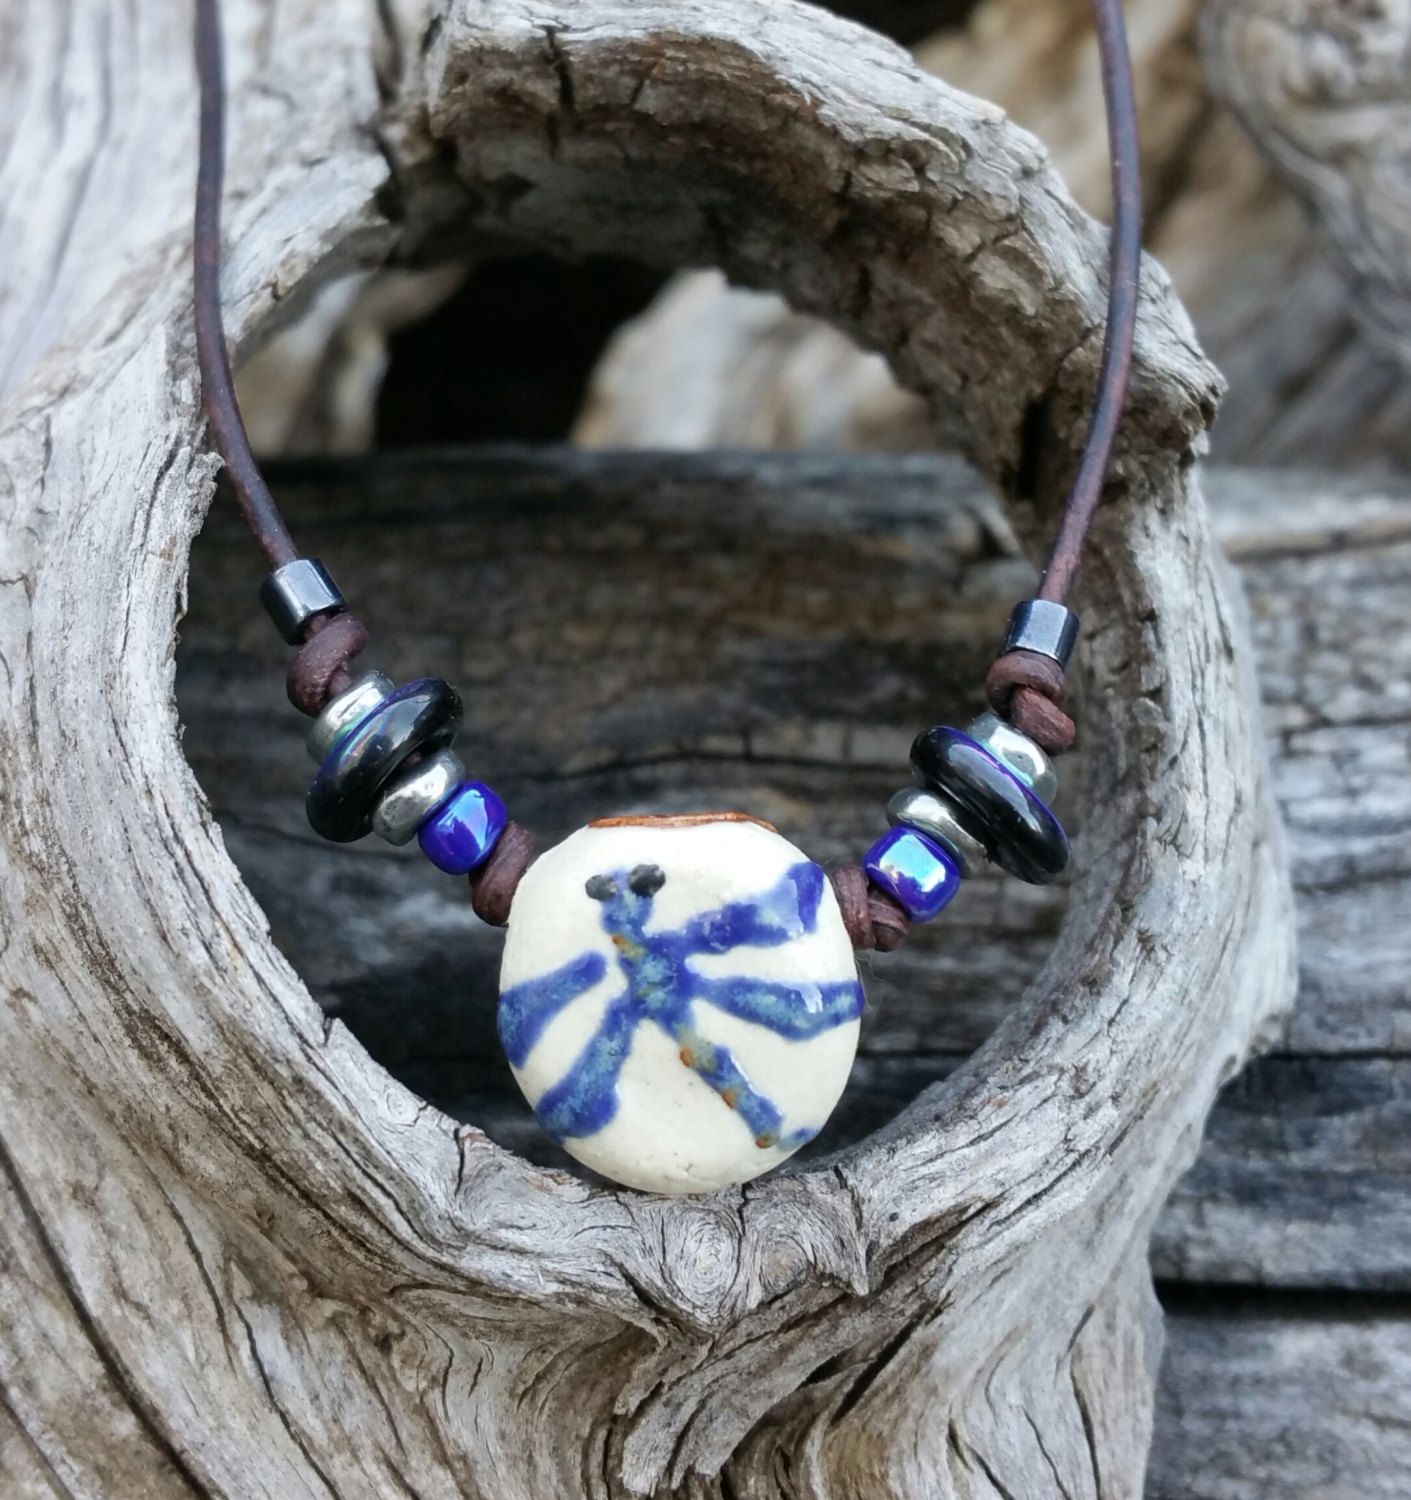 "Ceramic aromatherapy Necklace - ""Dragonfly Magic"" - Essential Oil diffuser - Dragonfly jewelry - Native Lore - Earth Jewelry - #391 by EarthnOils on Etsy"